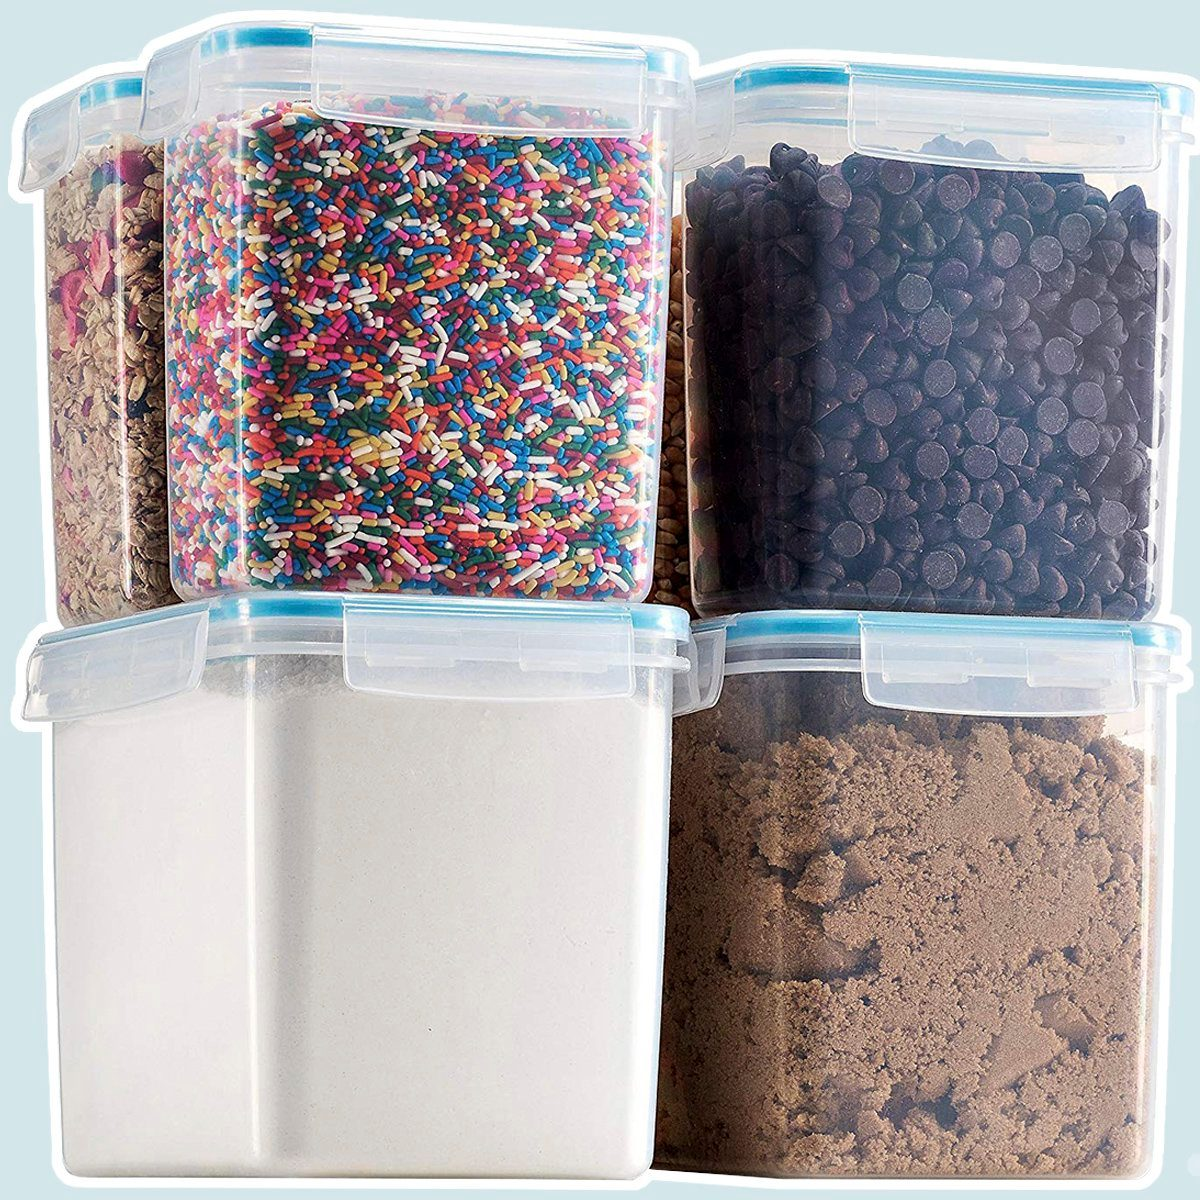 Komax Biokips Flour and Sugar Storage Containers